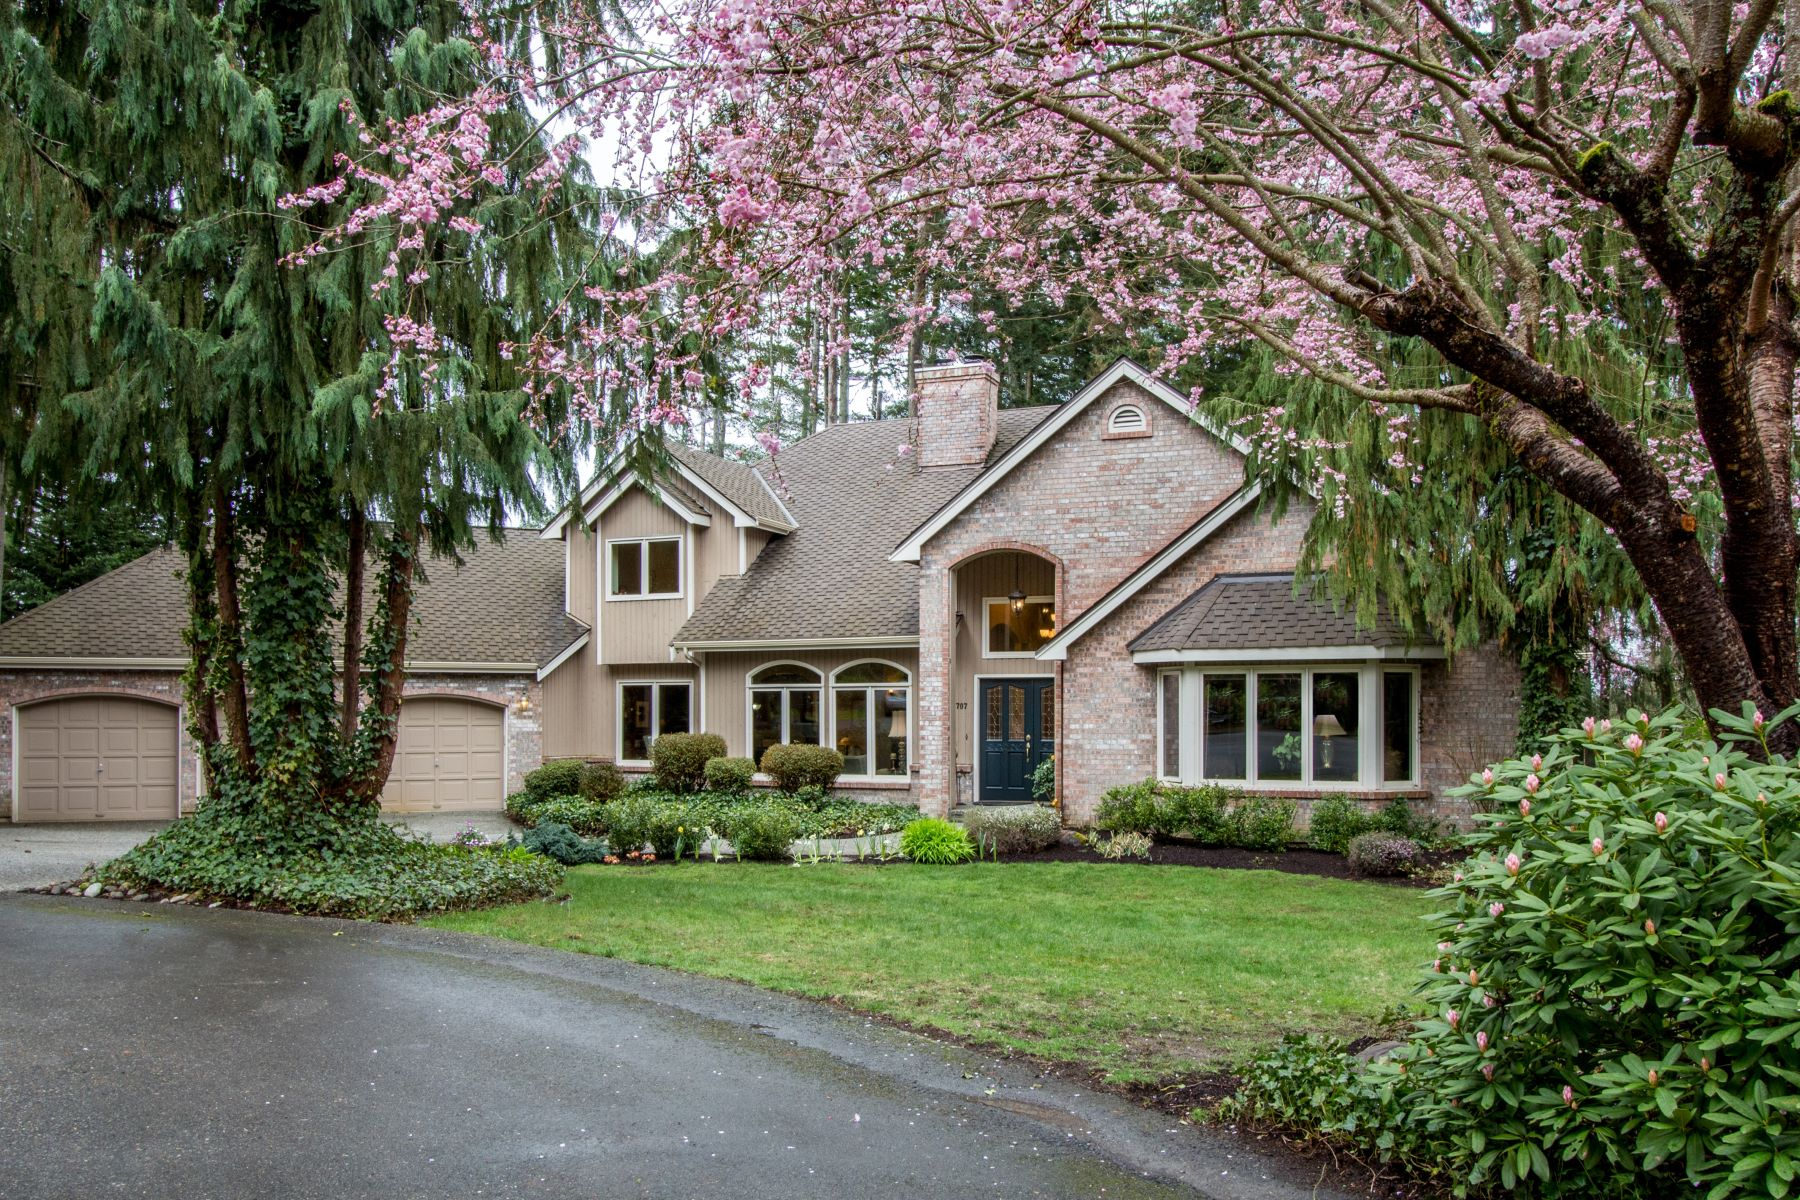 Single Family Home for Sale at Traditional English Hill Home 16707 NE 124th St Redmond, Washington, 98052 United States